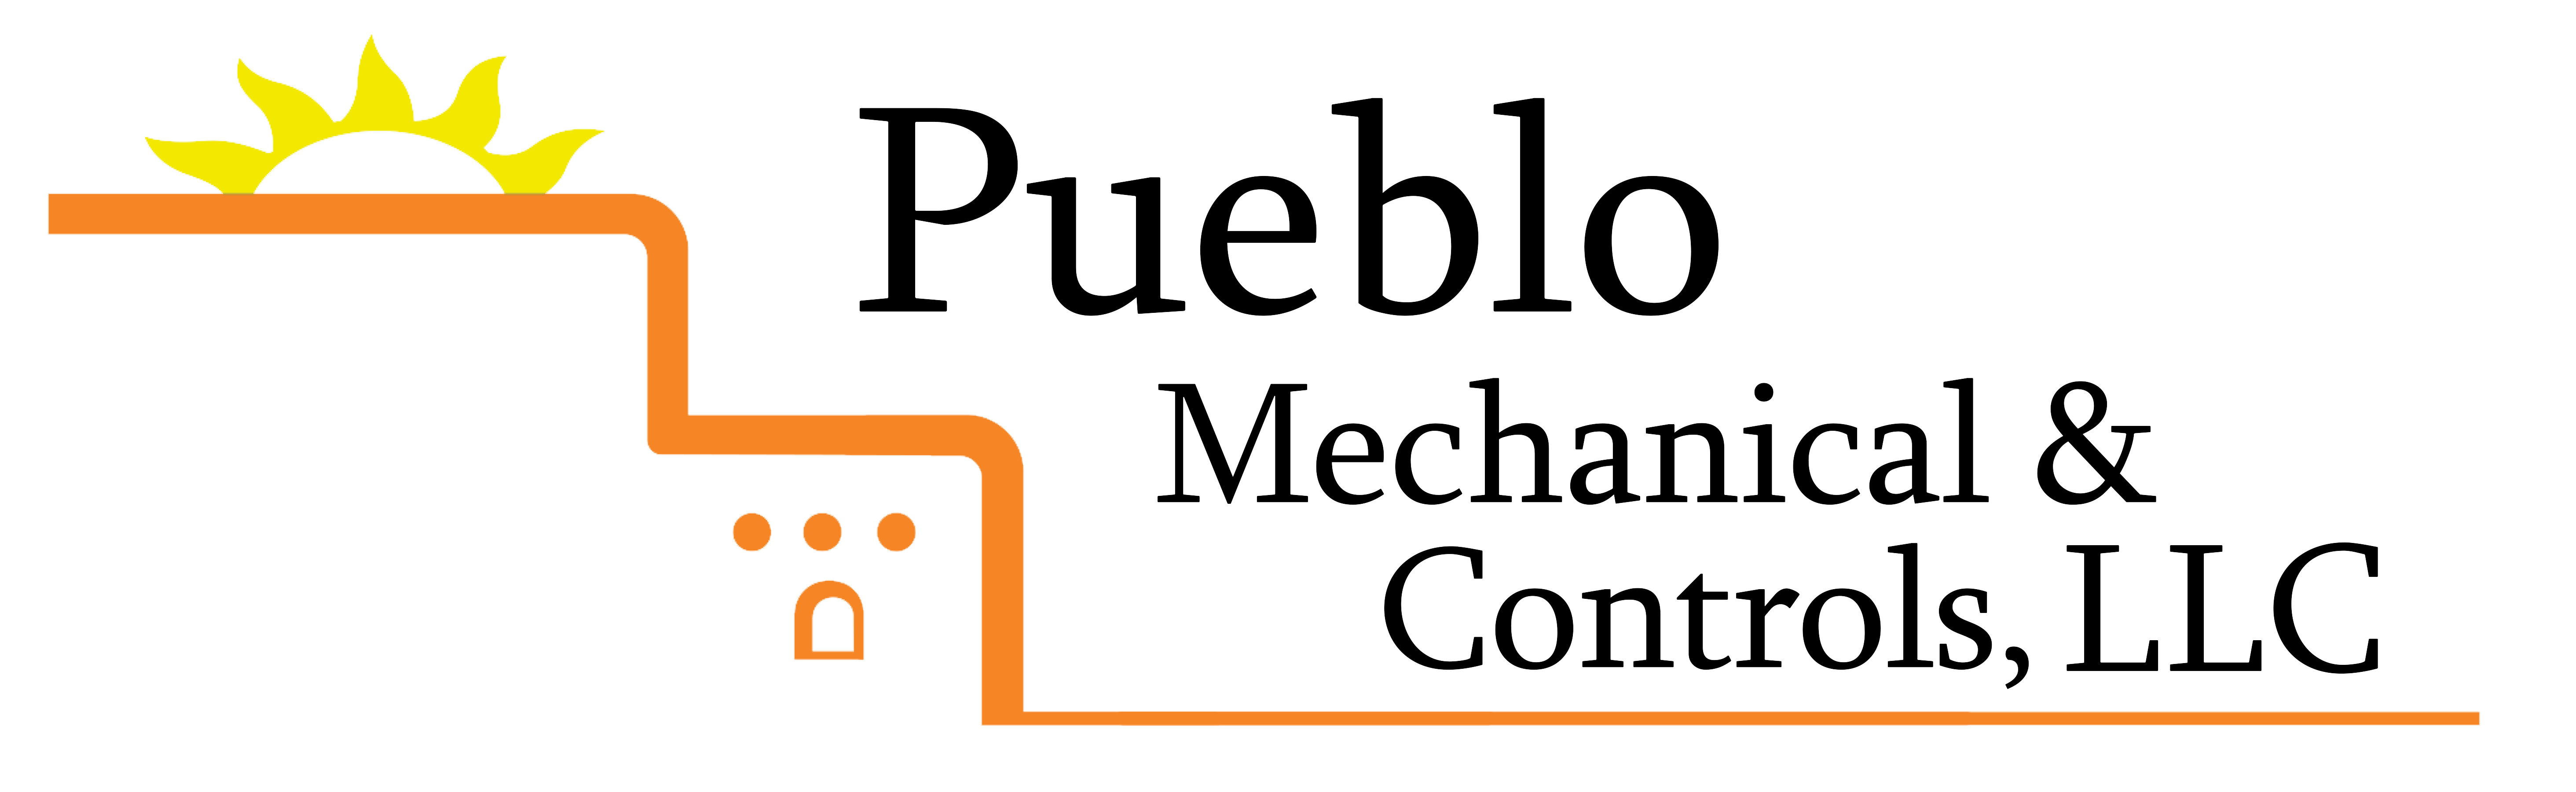 Brian May Sponsor - $5,000 - Pueblo Mechanical & Controls - Logo